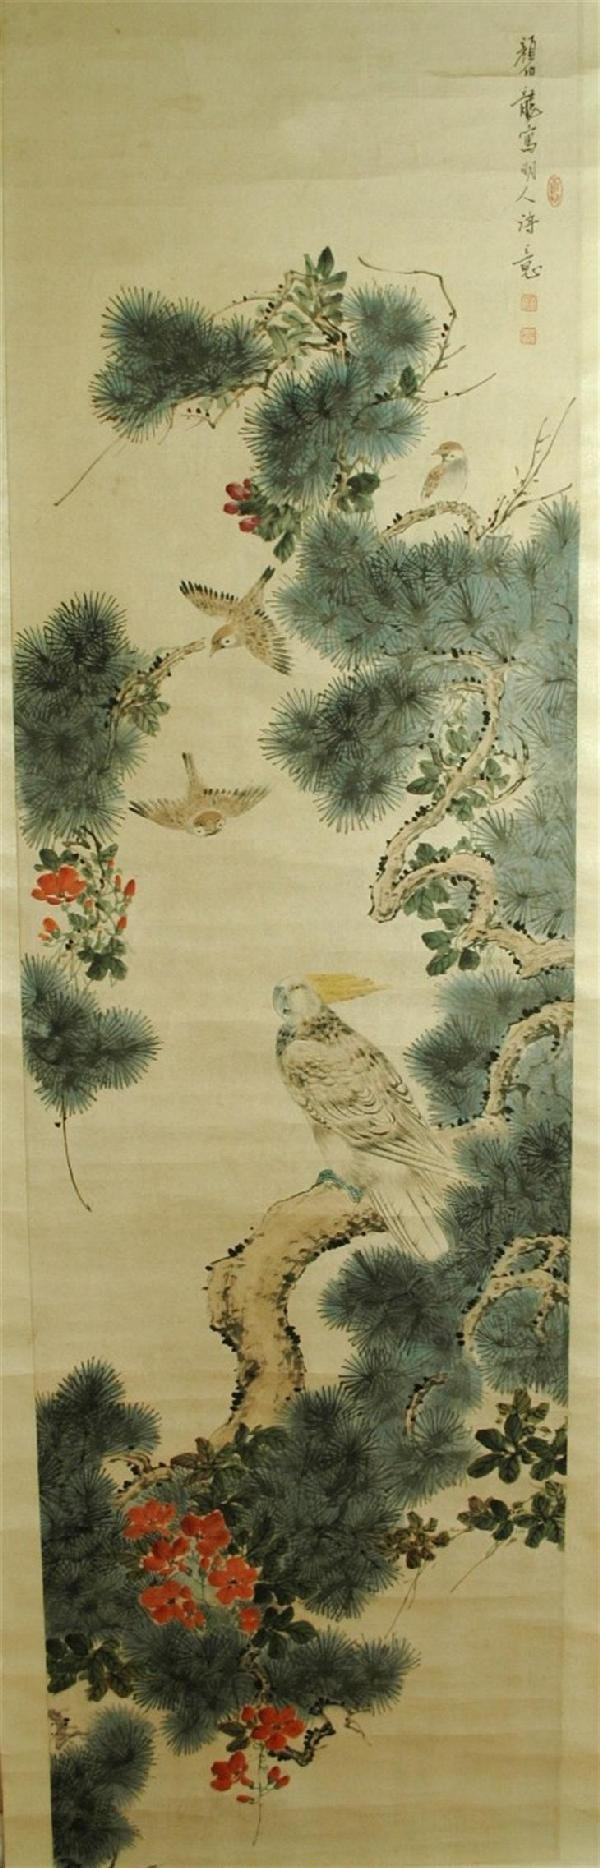 951: Chinese hanging scroll painting